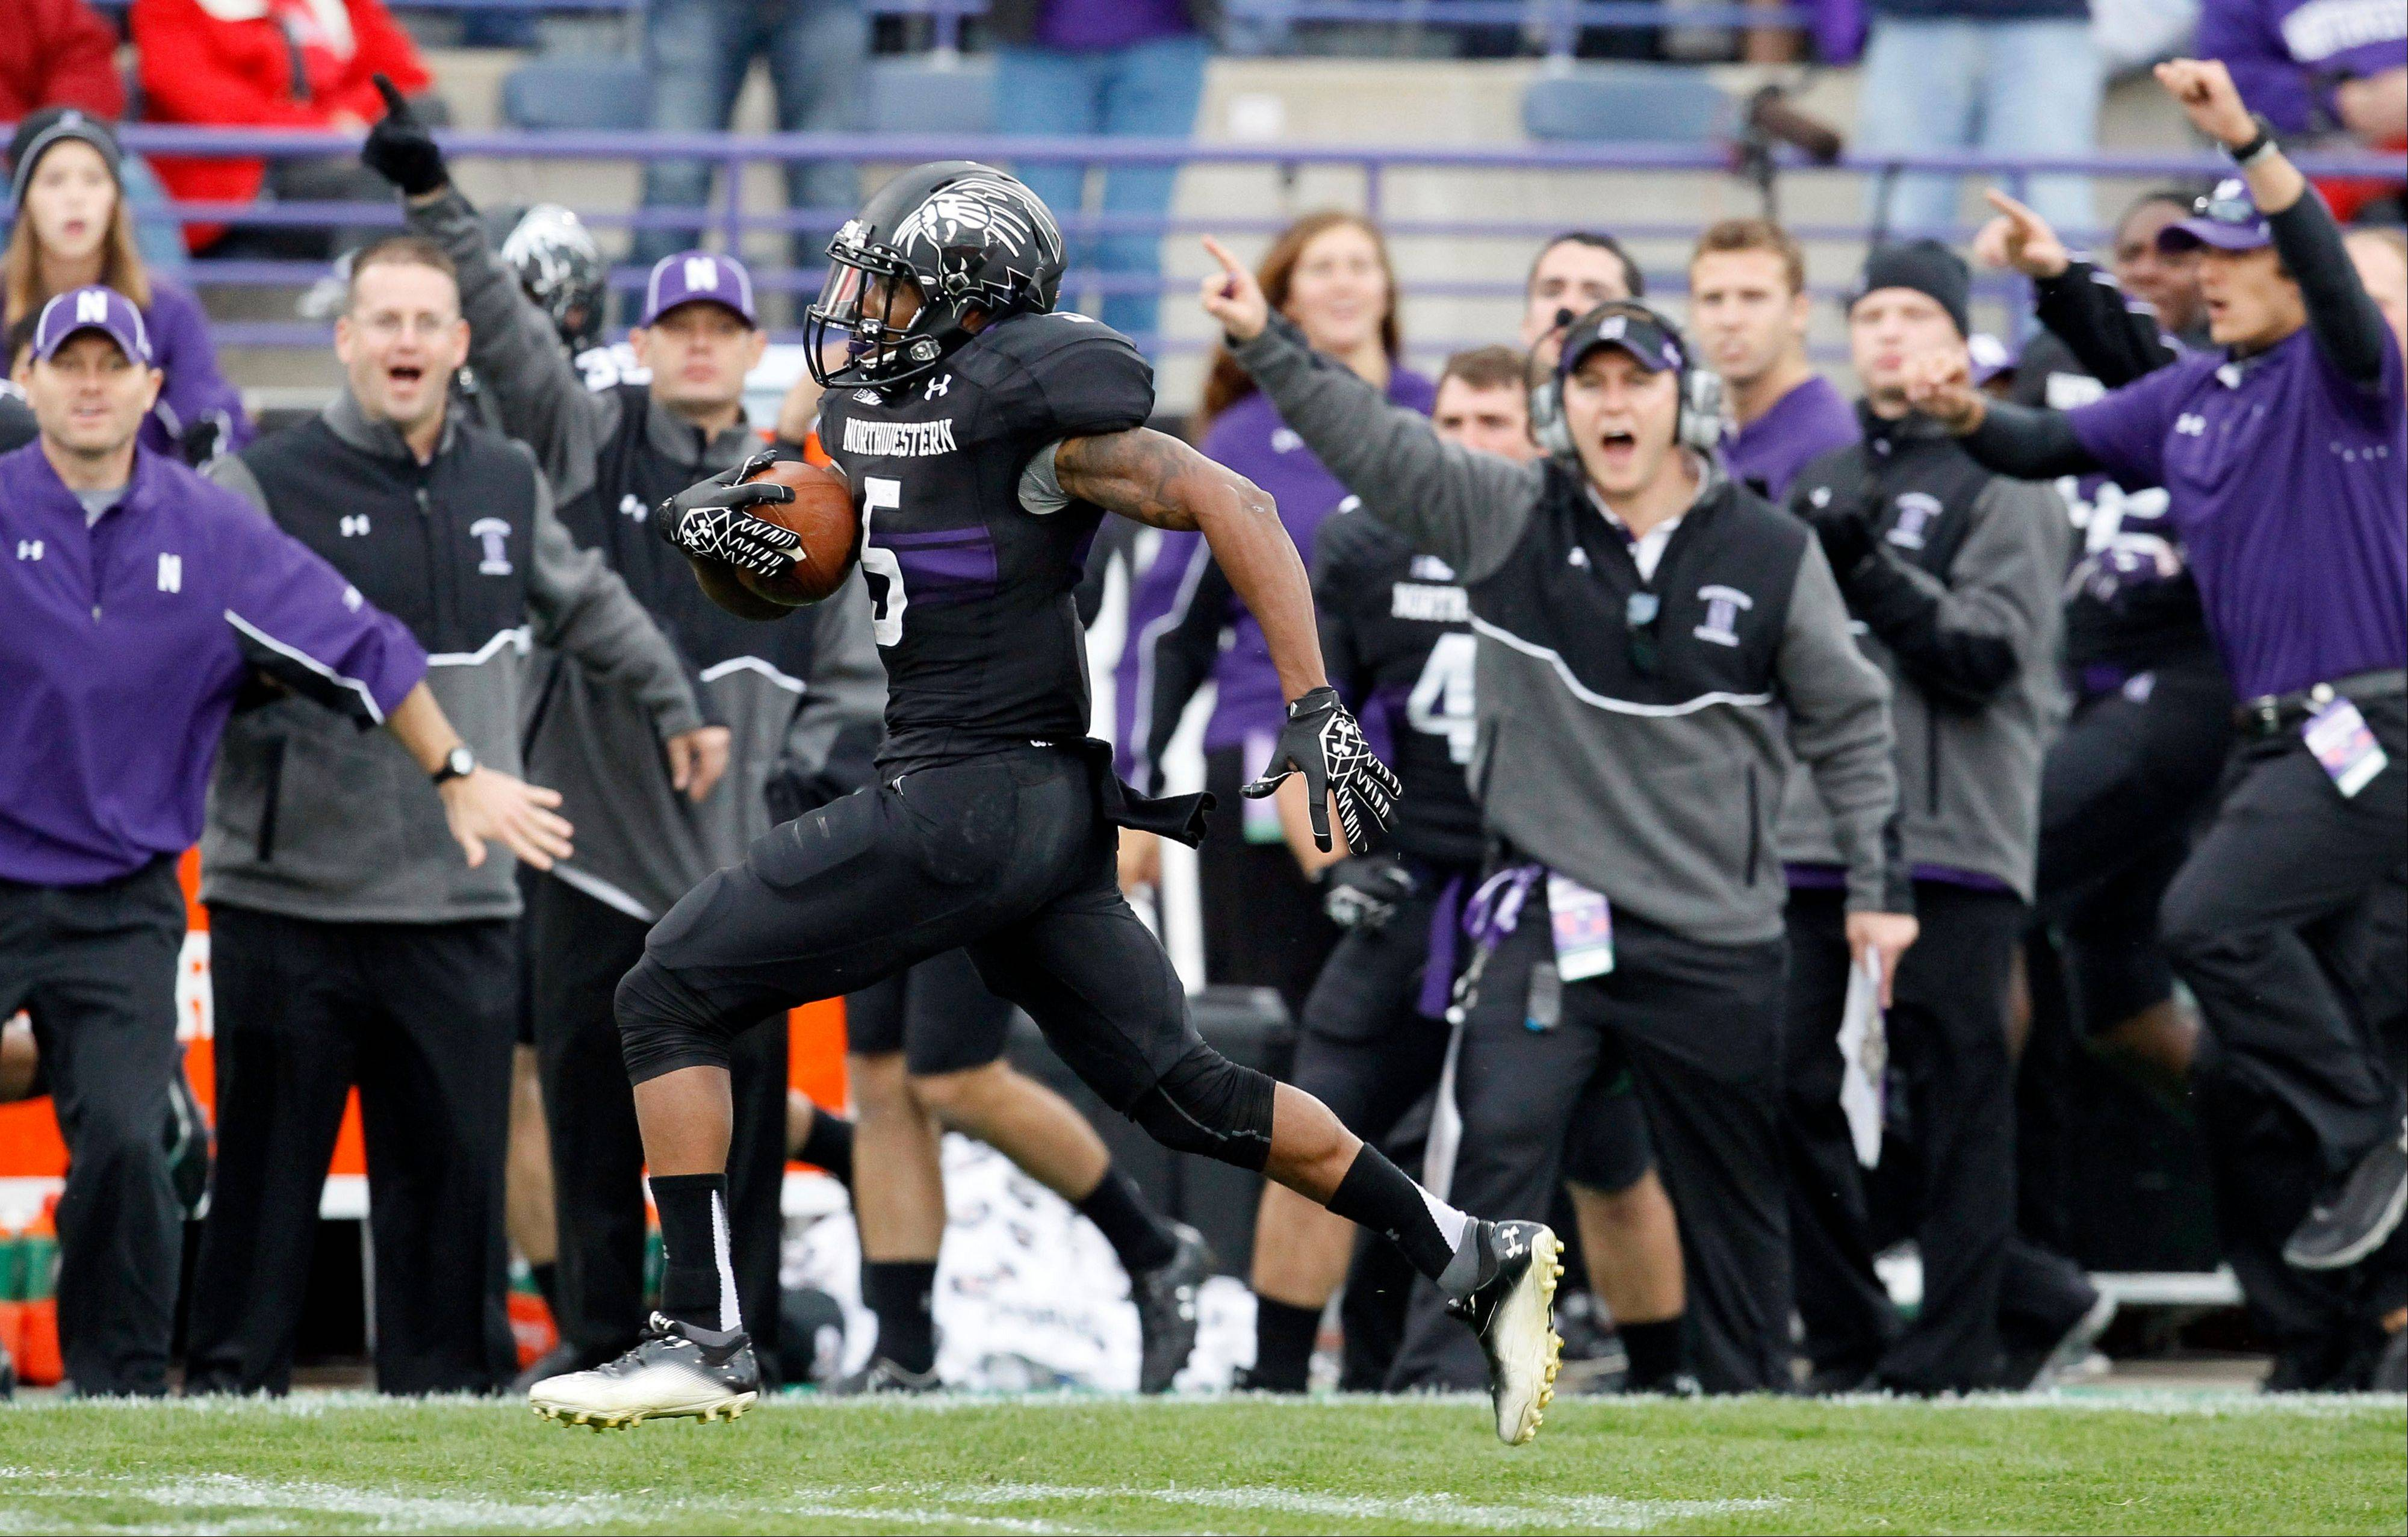 Northwestern running back Venric Mark heads for an 80-yard touchdown during the second half against Nebraska in Evanston.